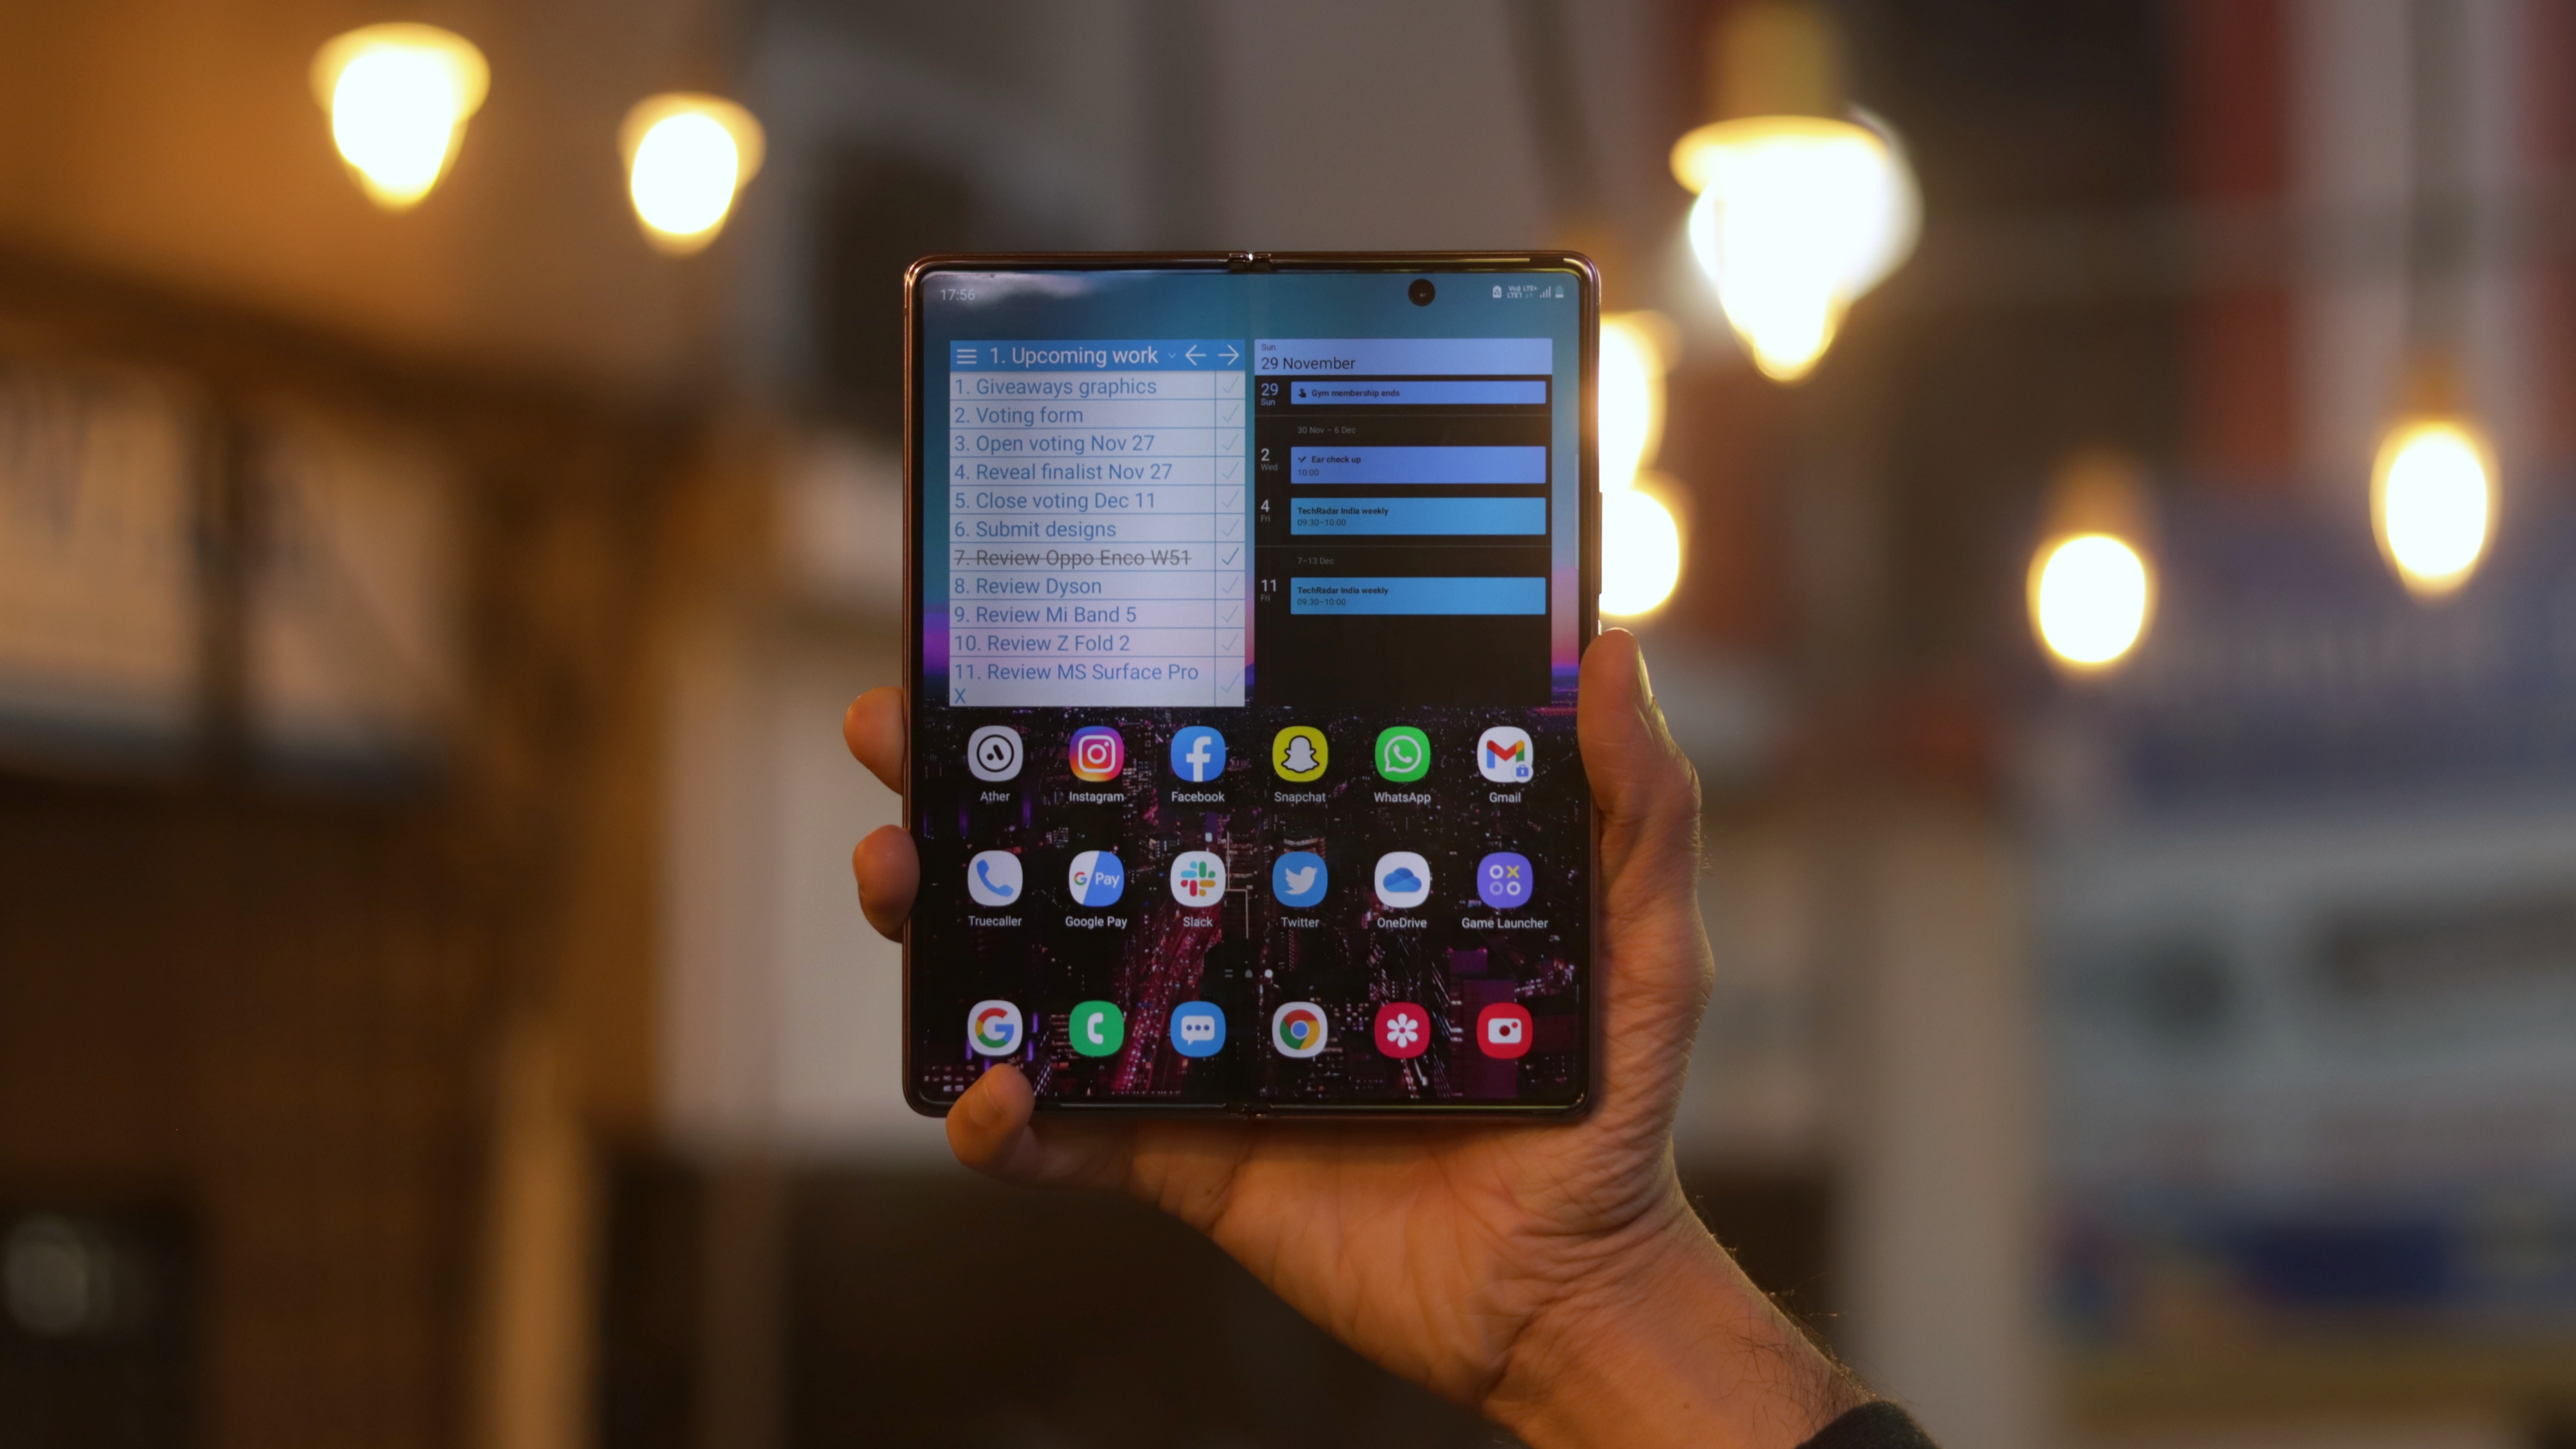 A Samsung Galaxy Z Fold 2 unfolded in someone's hand